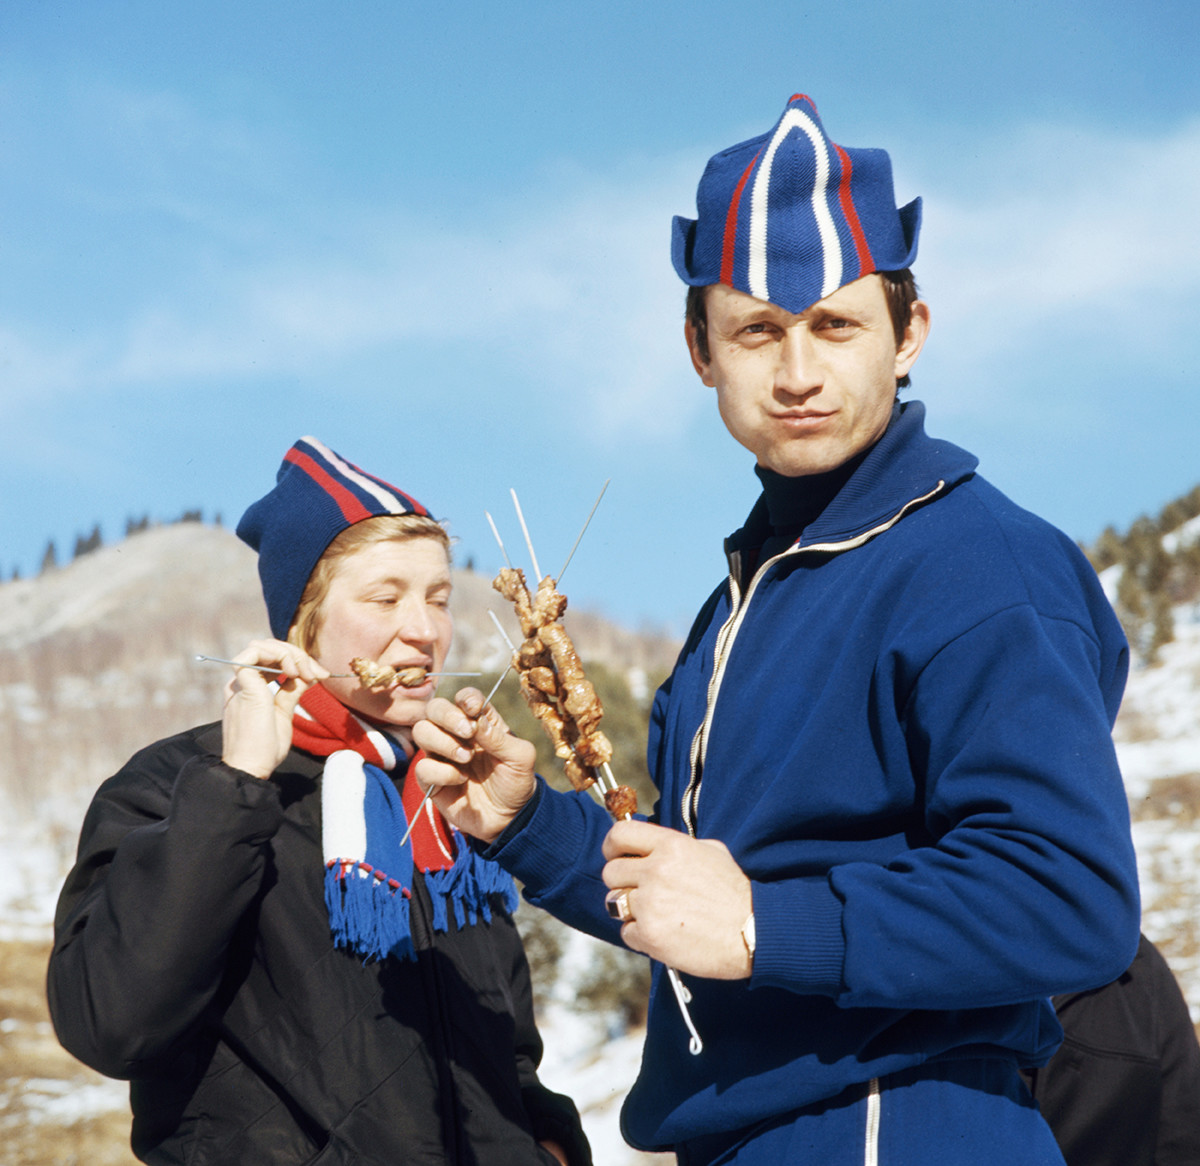 Alma-Ata, Kazakh SSR. Members of the USSR national speed skating team Lyudmila Fechina and Valery Kaplan during a rest at Medeo. 1970.